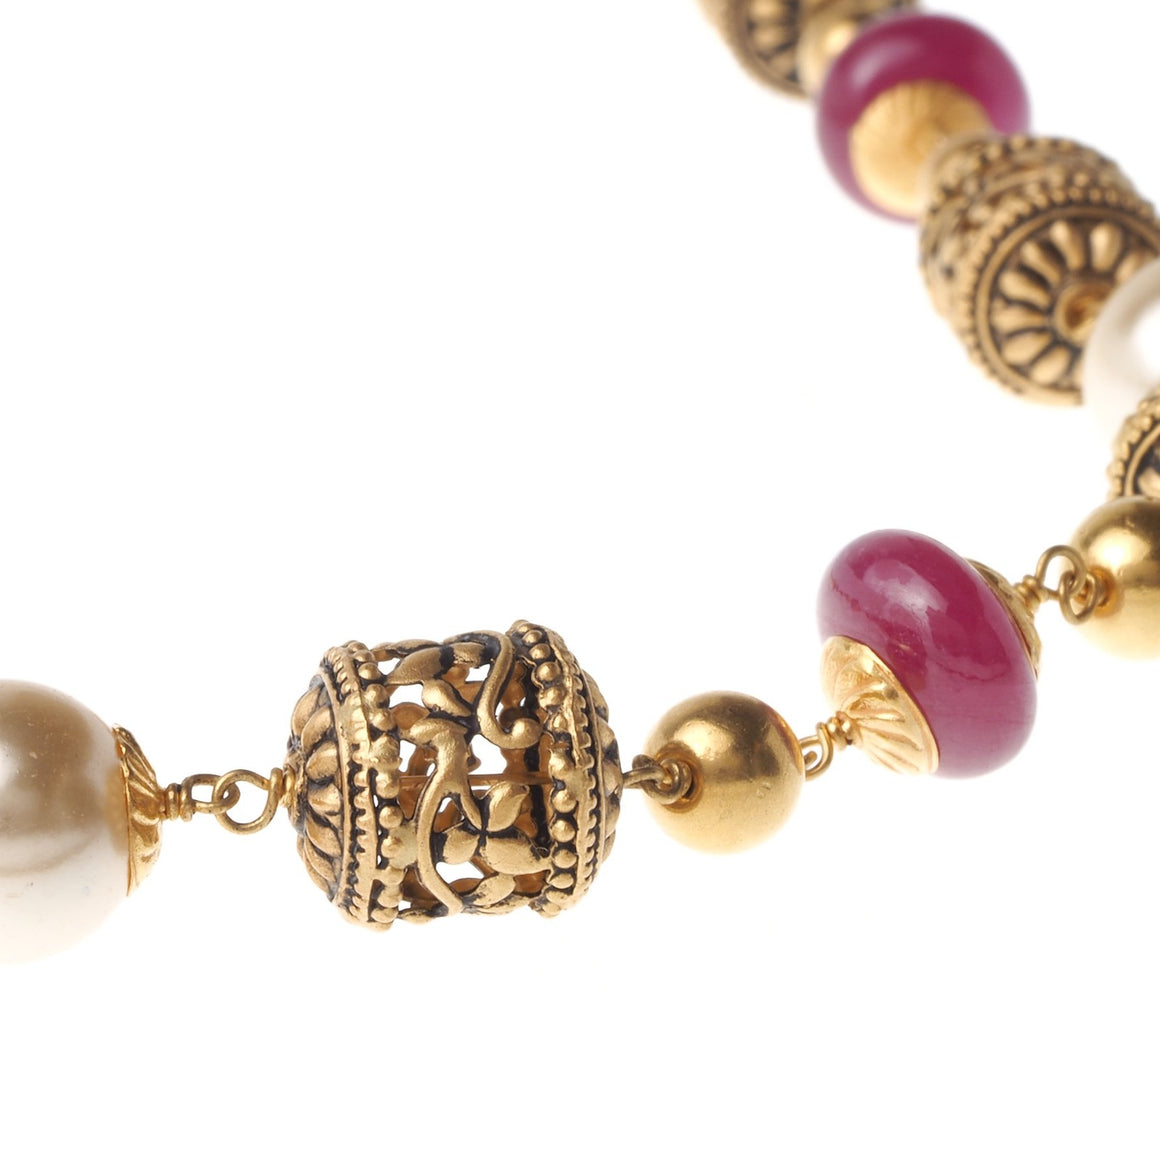 22ct Gold Antiquated Look Necklace with treated Rubies and Simulated Pearls (GMS-P827)